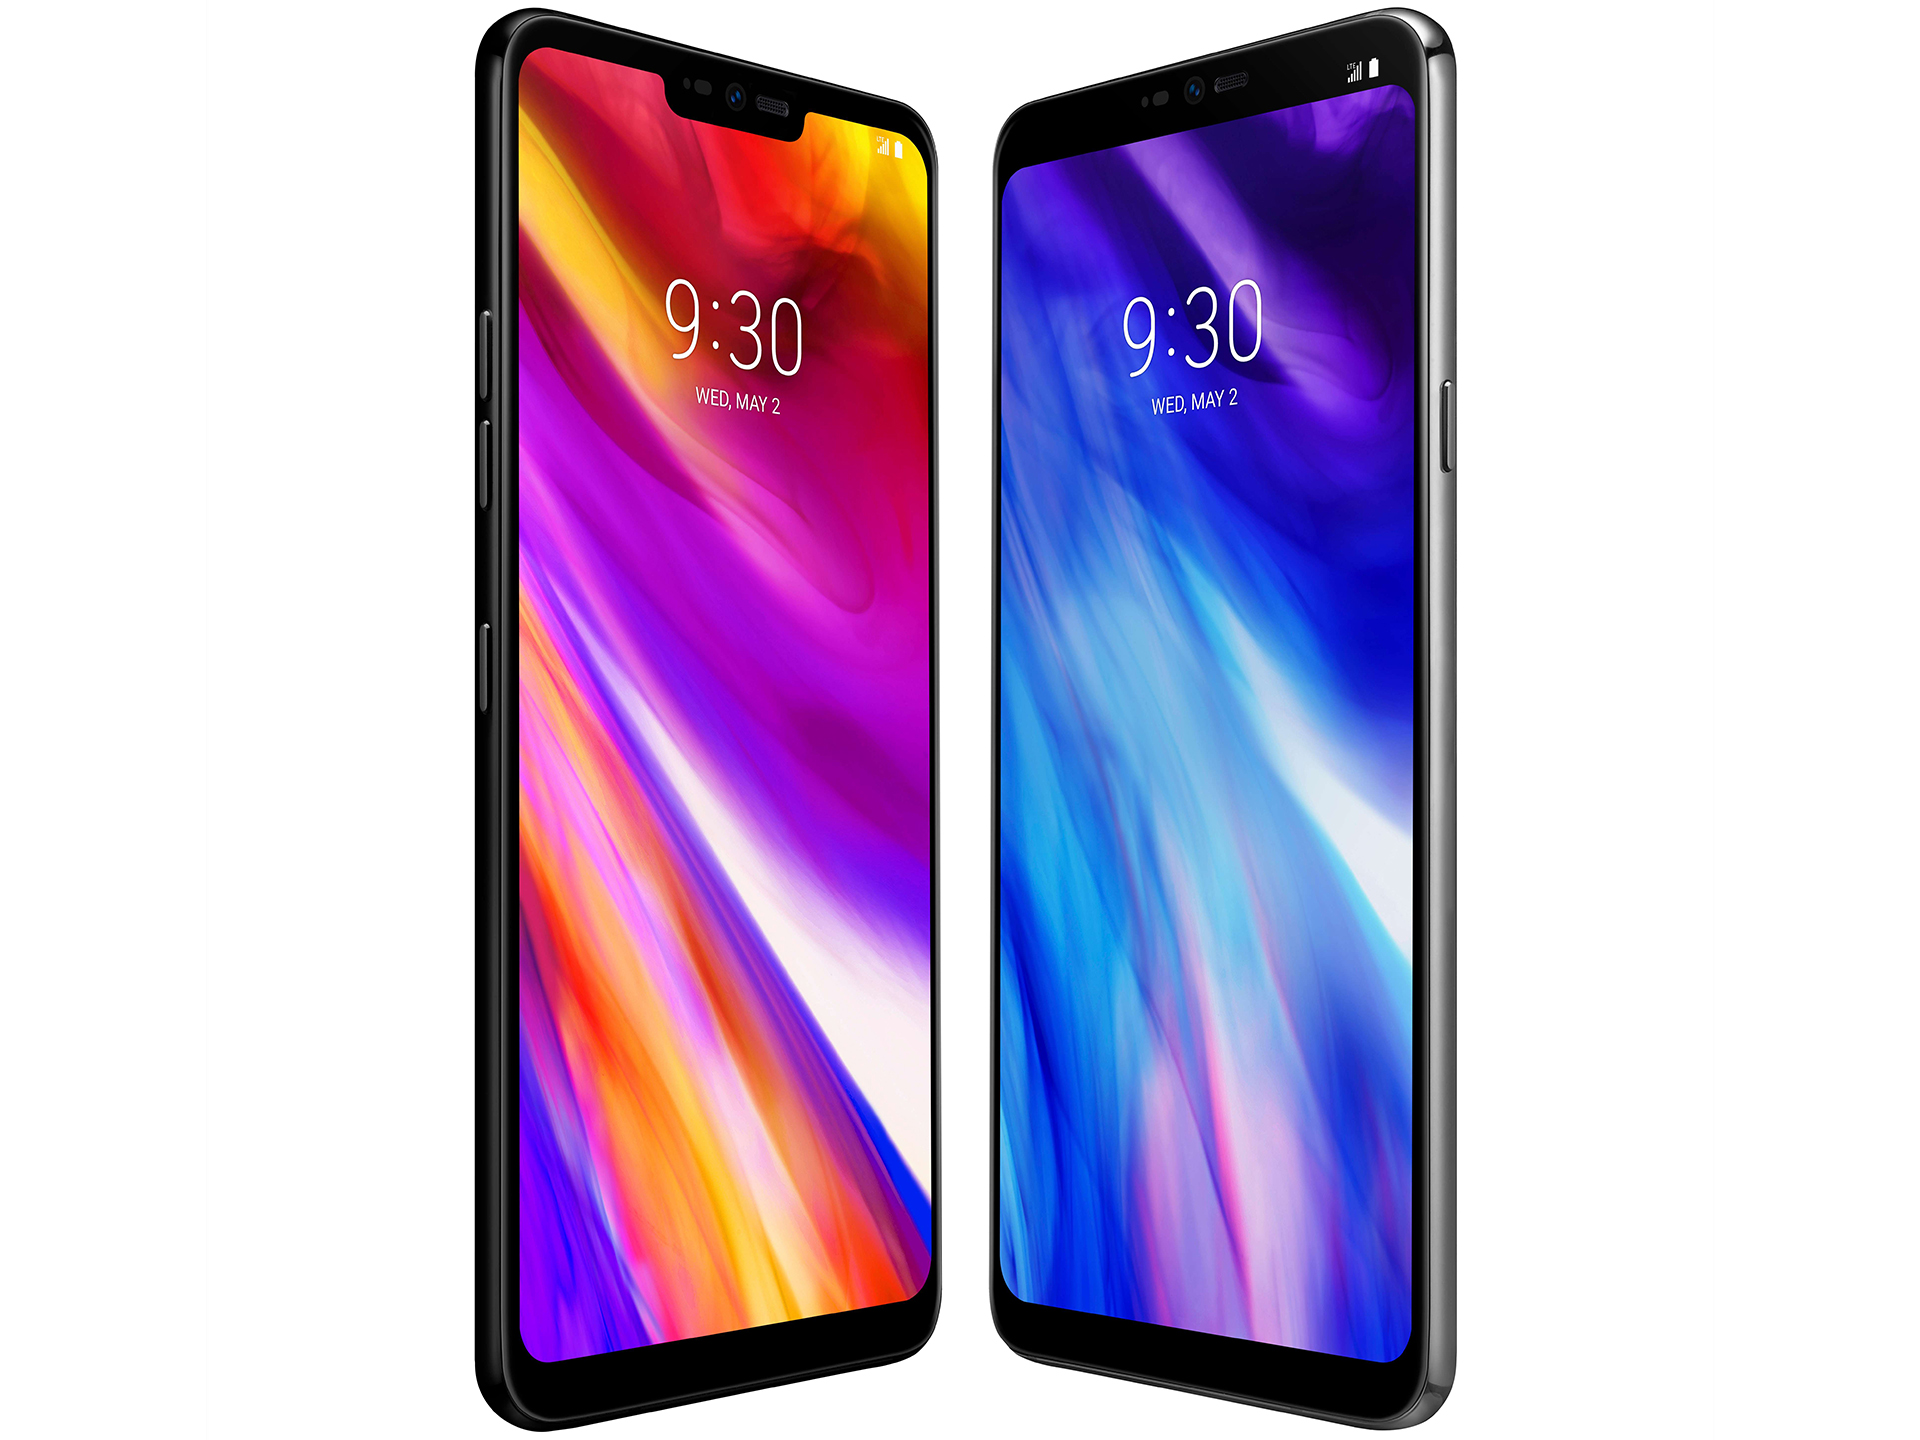 LG G7 ThinQ Smartphone Review - NotebookCheck net Reviews